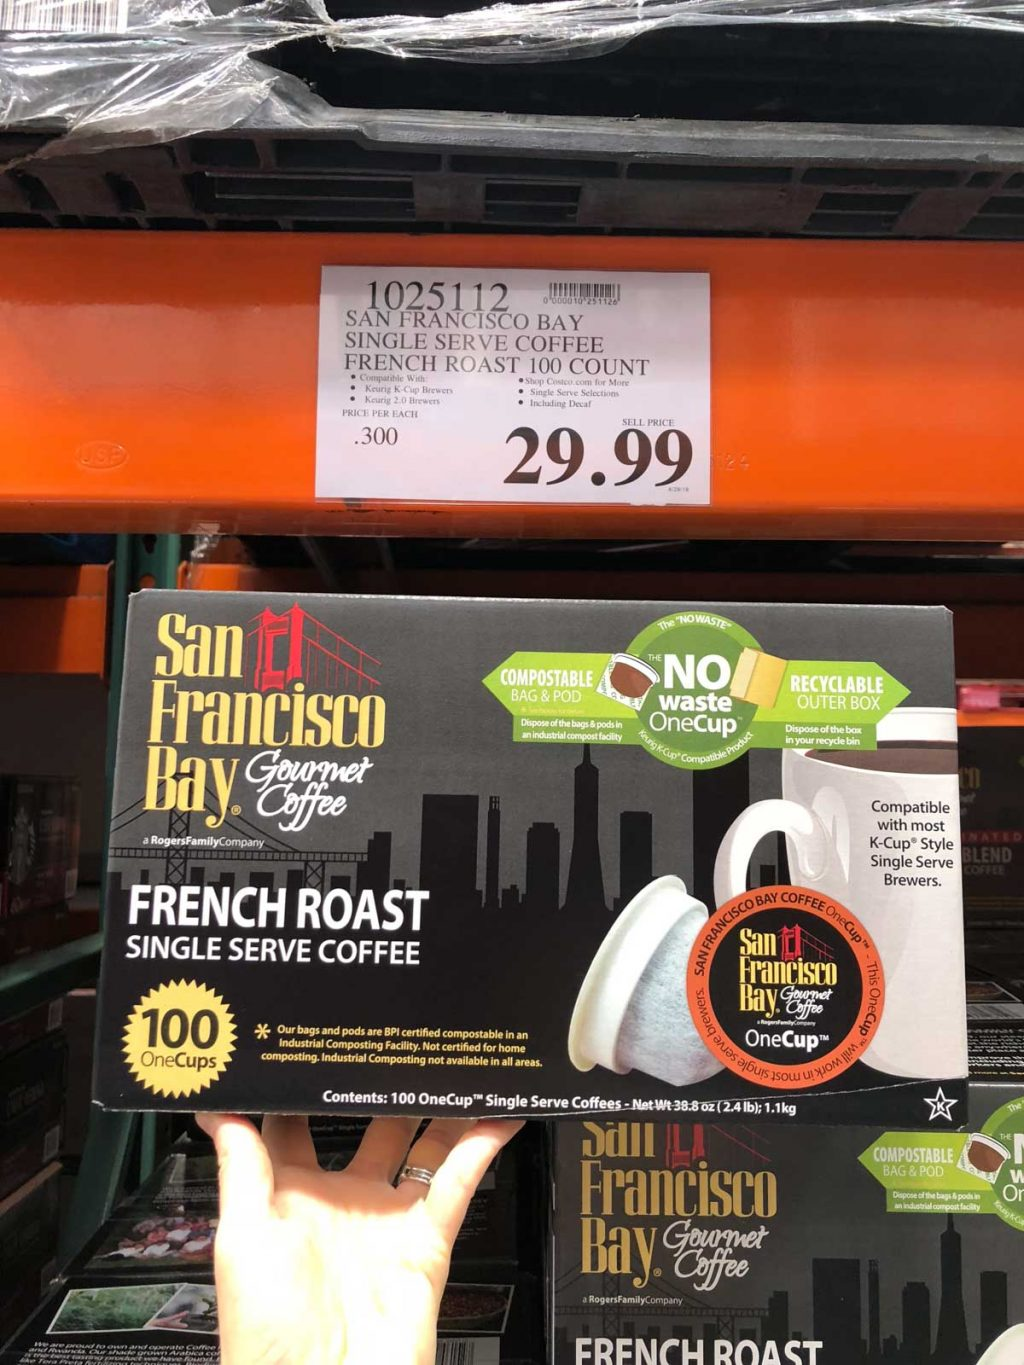 A hand holding a large box of San Francisco Bay no waste cups for $29.99 at Costco.